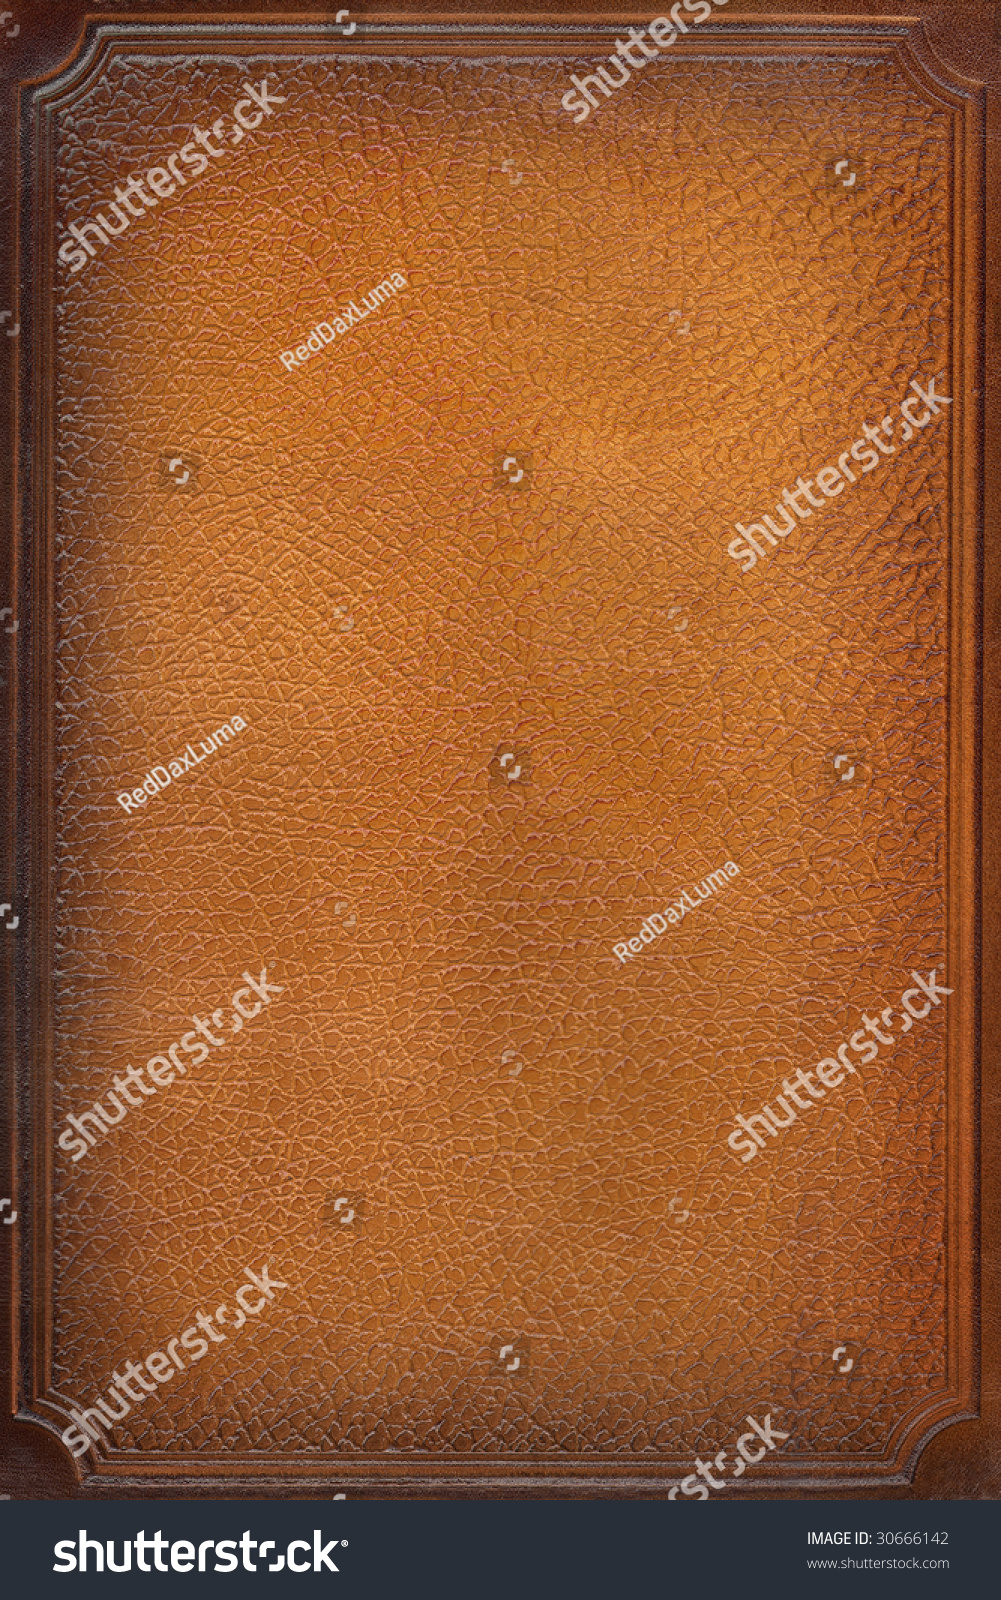 Book Cover Craft Texture ~ Brown leather craft tooled vintage book stock photo